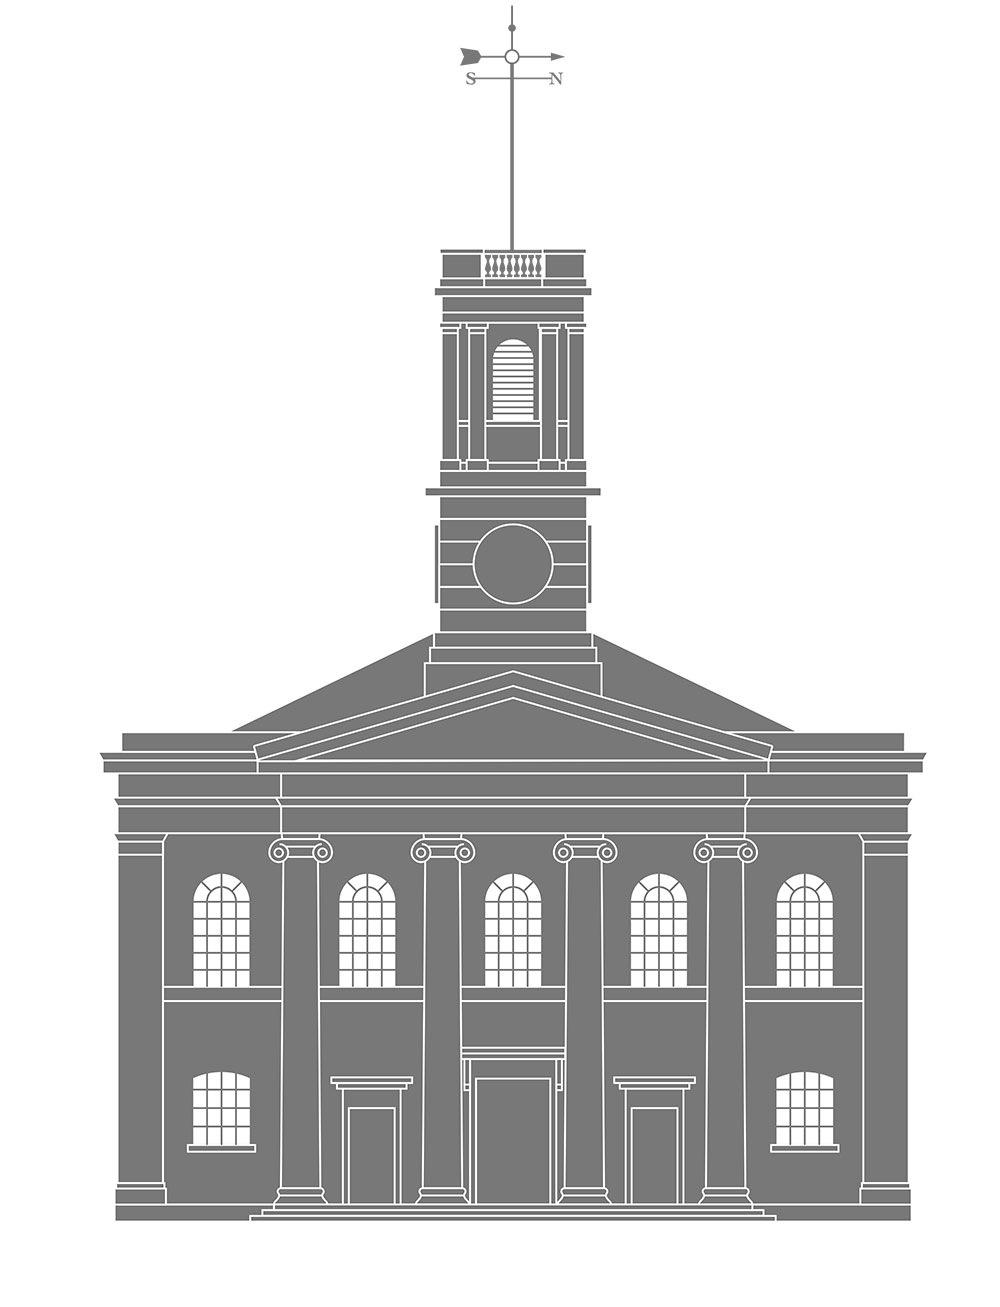 Our re-drawing of the Sheerness Dockyard Church front elevation, used extensively in their communications.